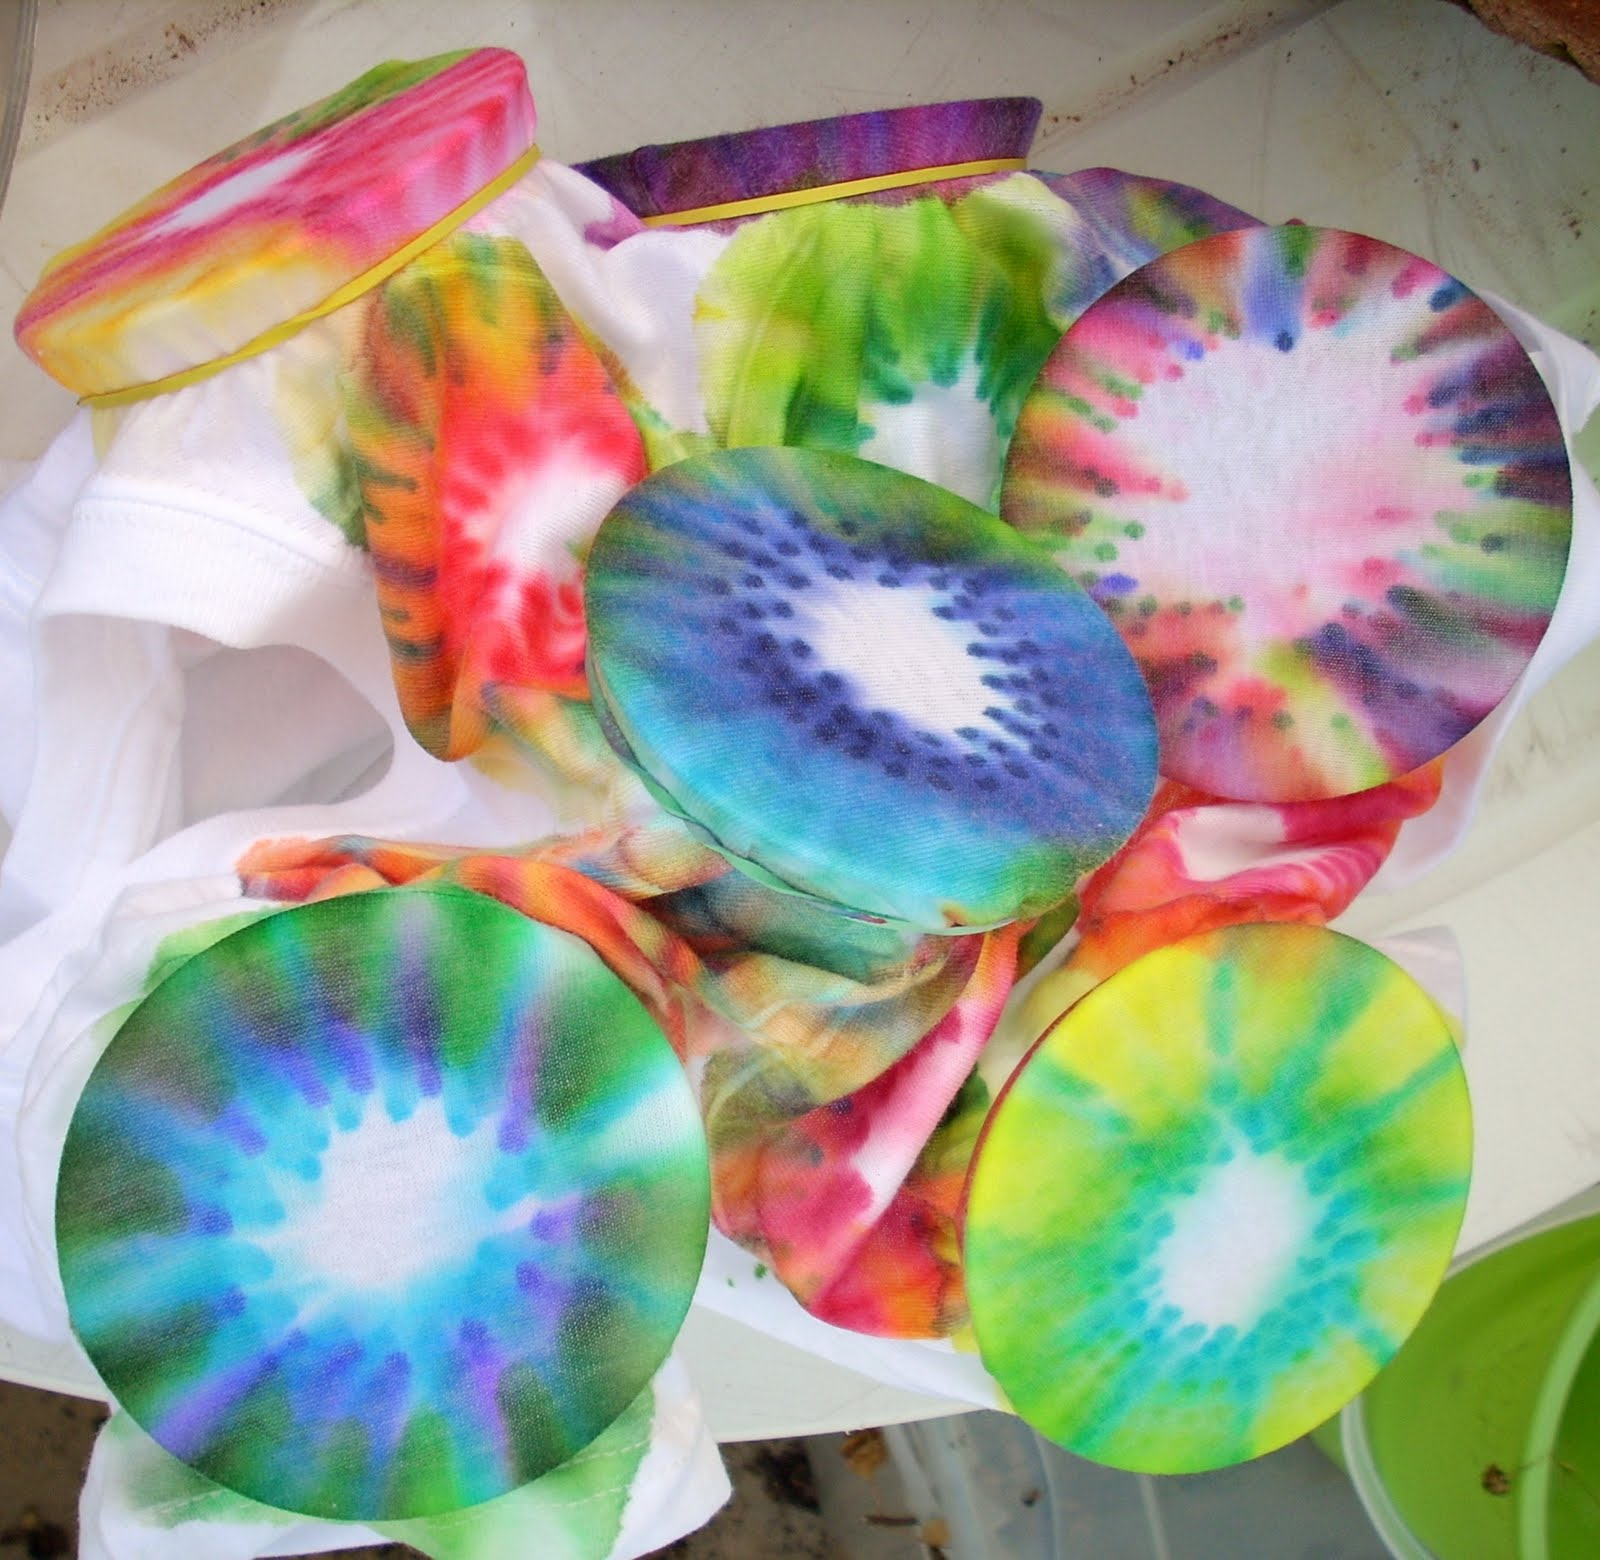 Faerie * Dust * Dreams: How To Tie Dye With Sharpie Markers